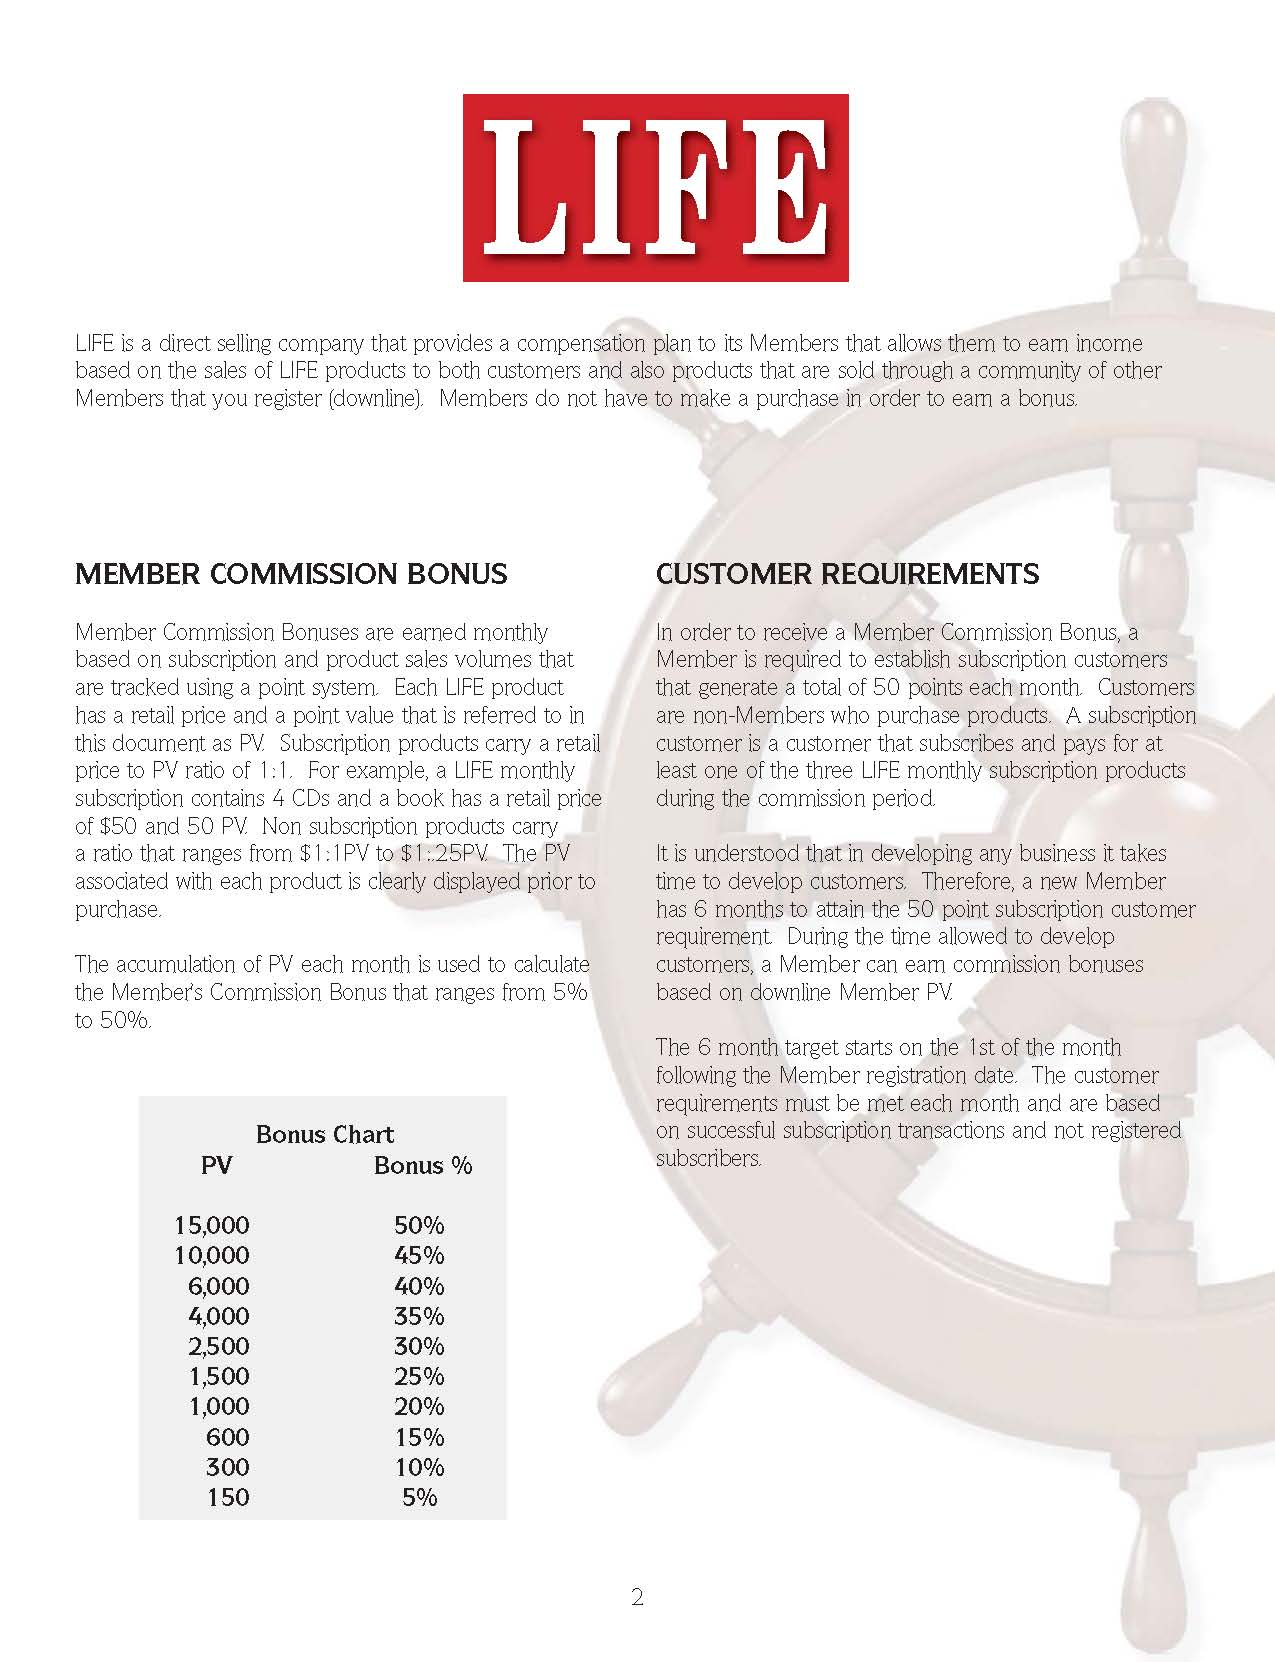 life compensation plan orrin woodward on life leadership life comp plan picture